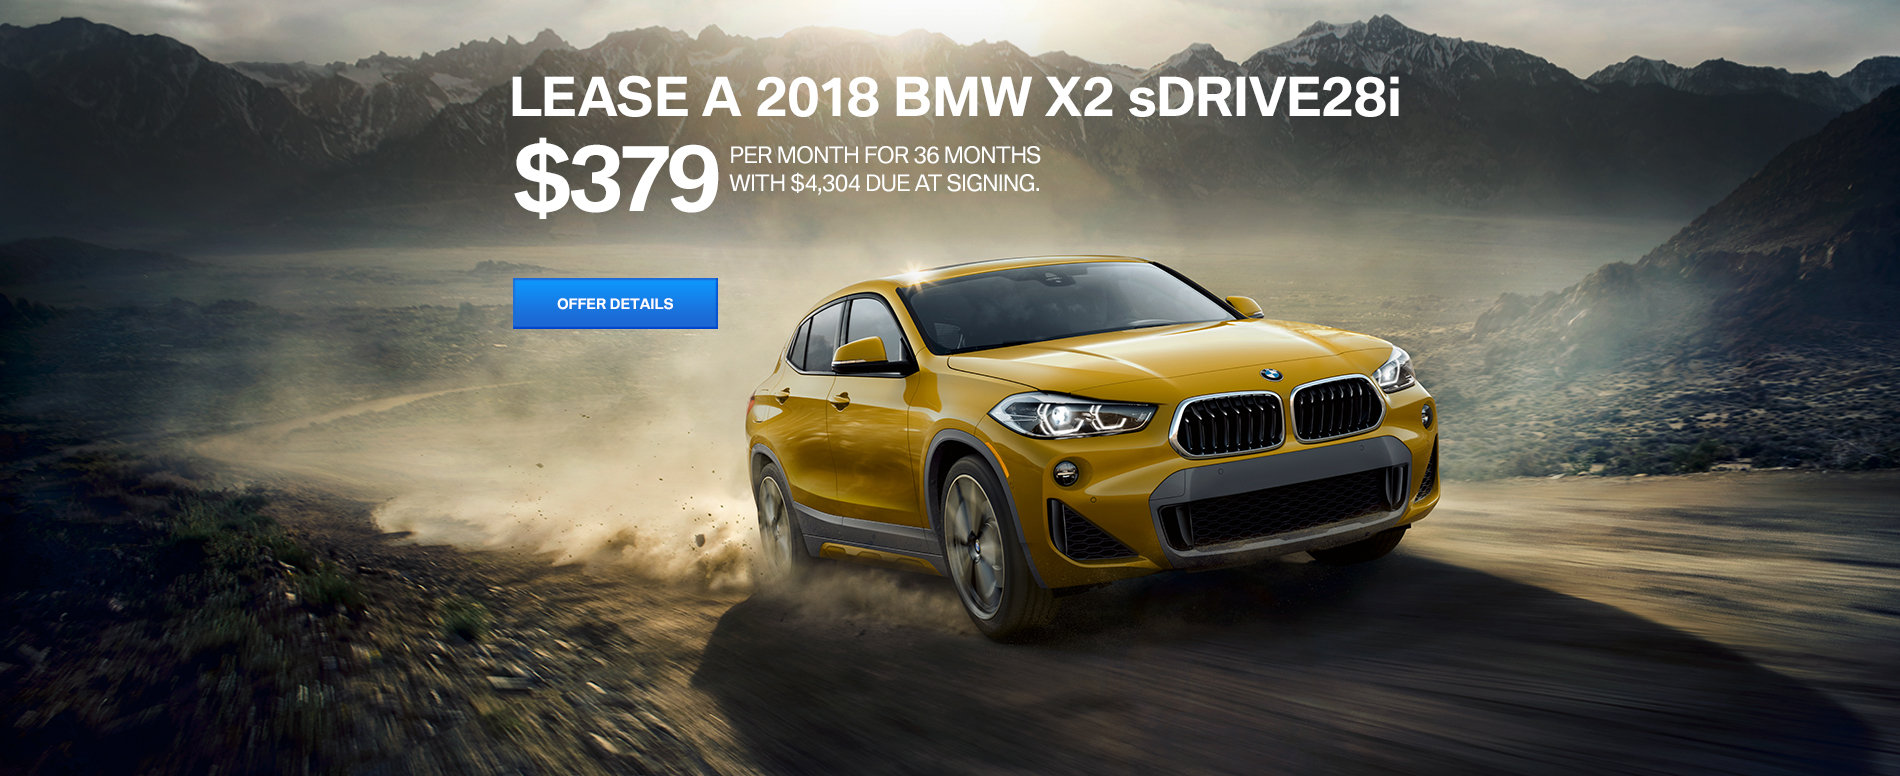 LEASE A 2018 X2 sDRIVE28i FOR $379 /MO FOR 36 MONTHS WITH $4,304